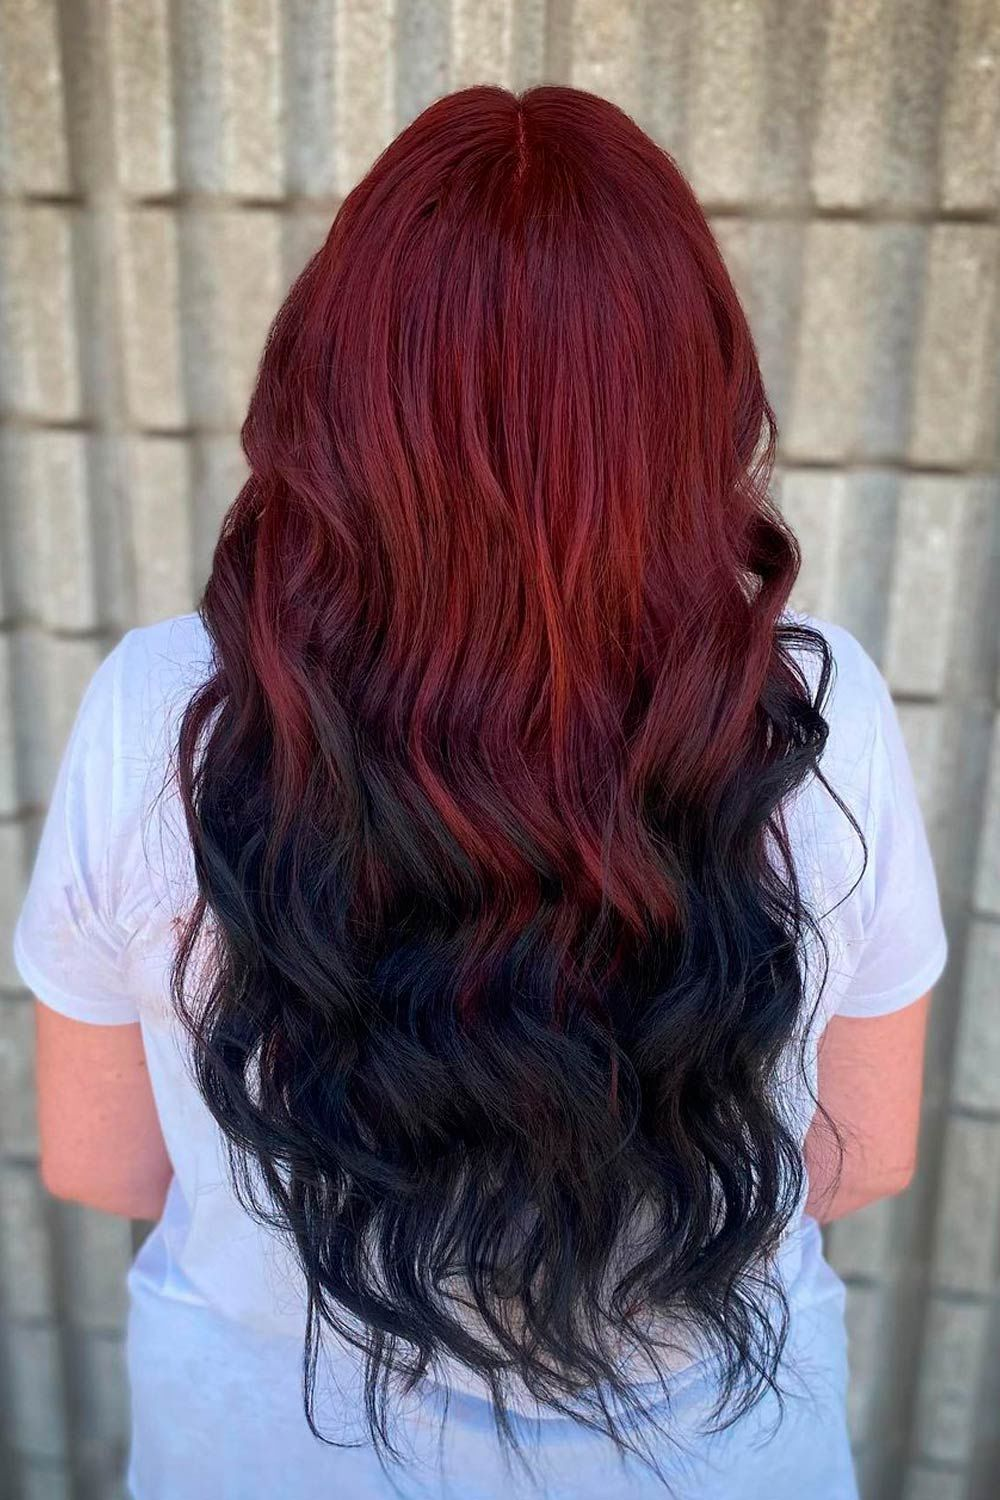 Extra Bright Ideas With Black And Colorful Ombre Reverse Hair, red ombre hair, Black ombre hair, reverse red ombre hair